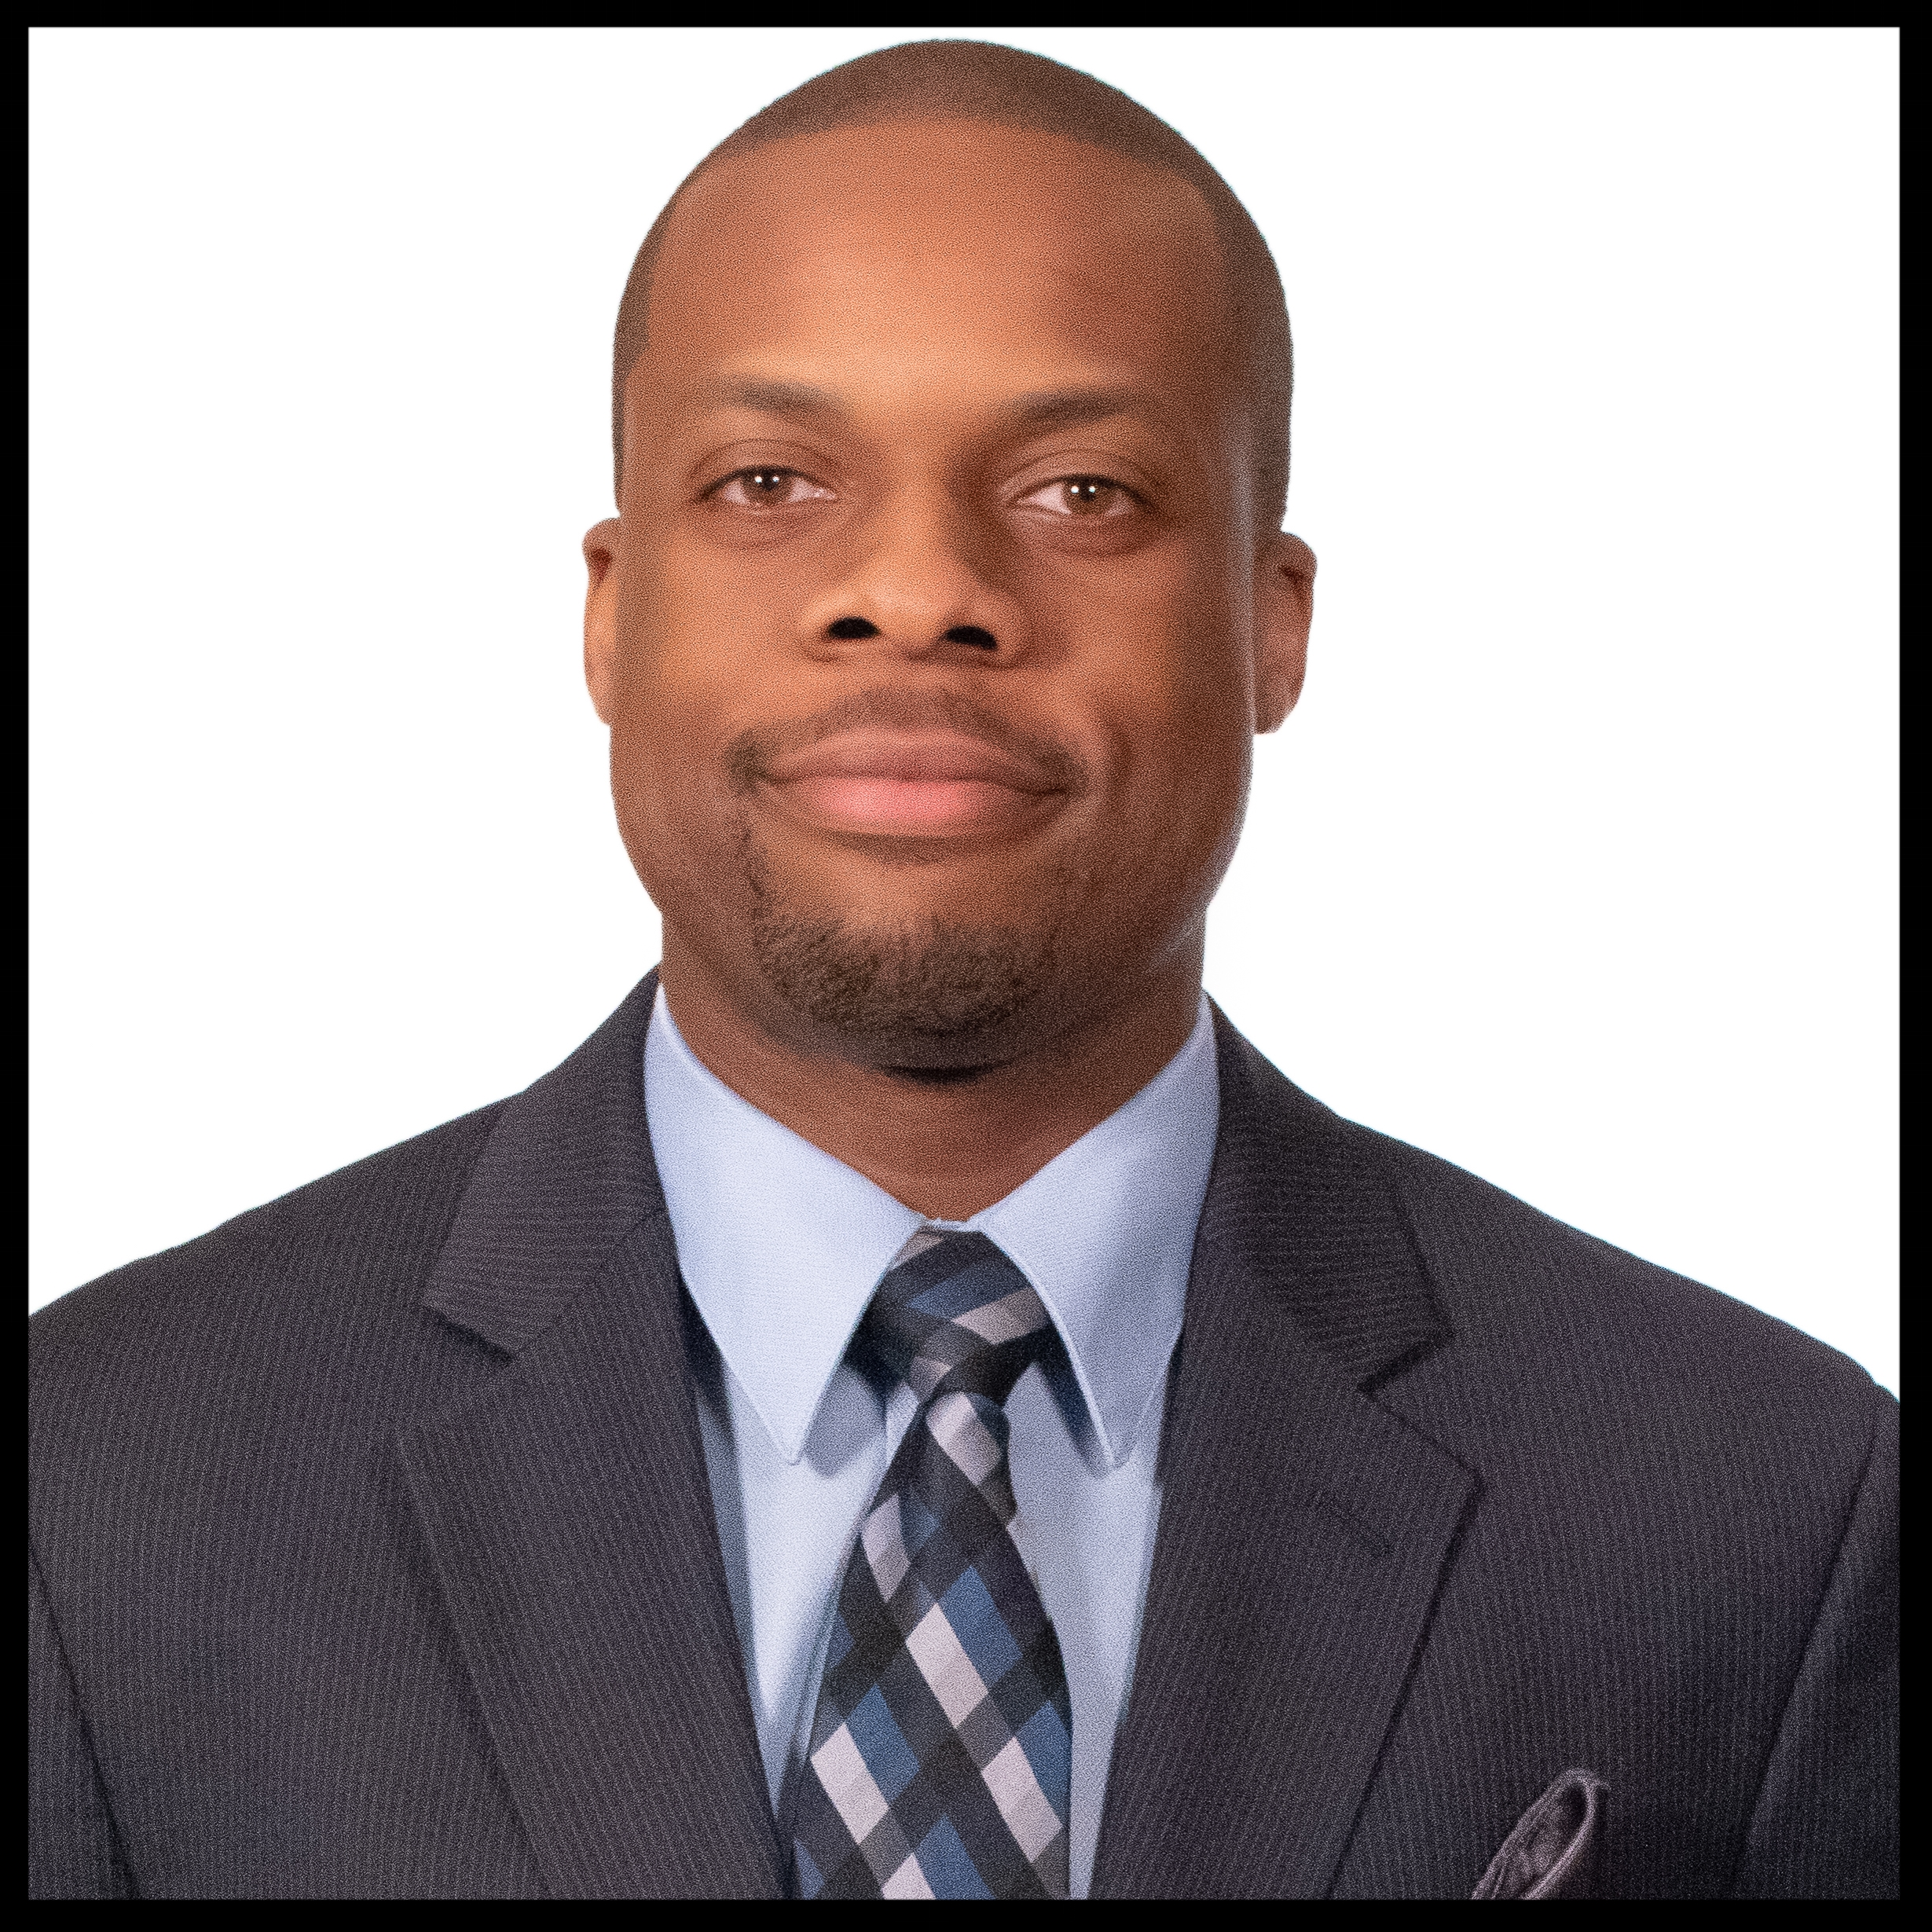 Jamar Creech  Age: 35 Category: Business Location: Upper Marlboro